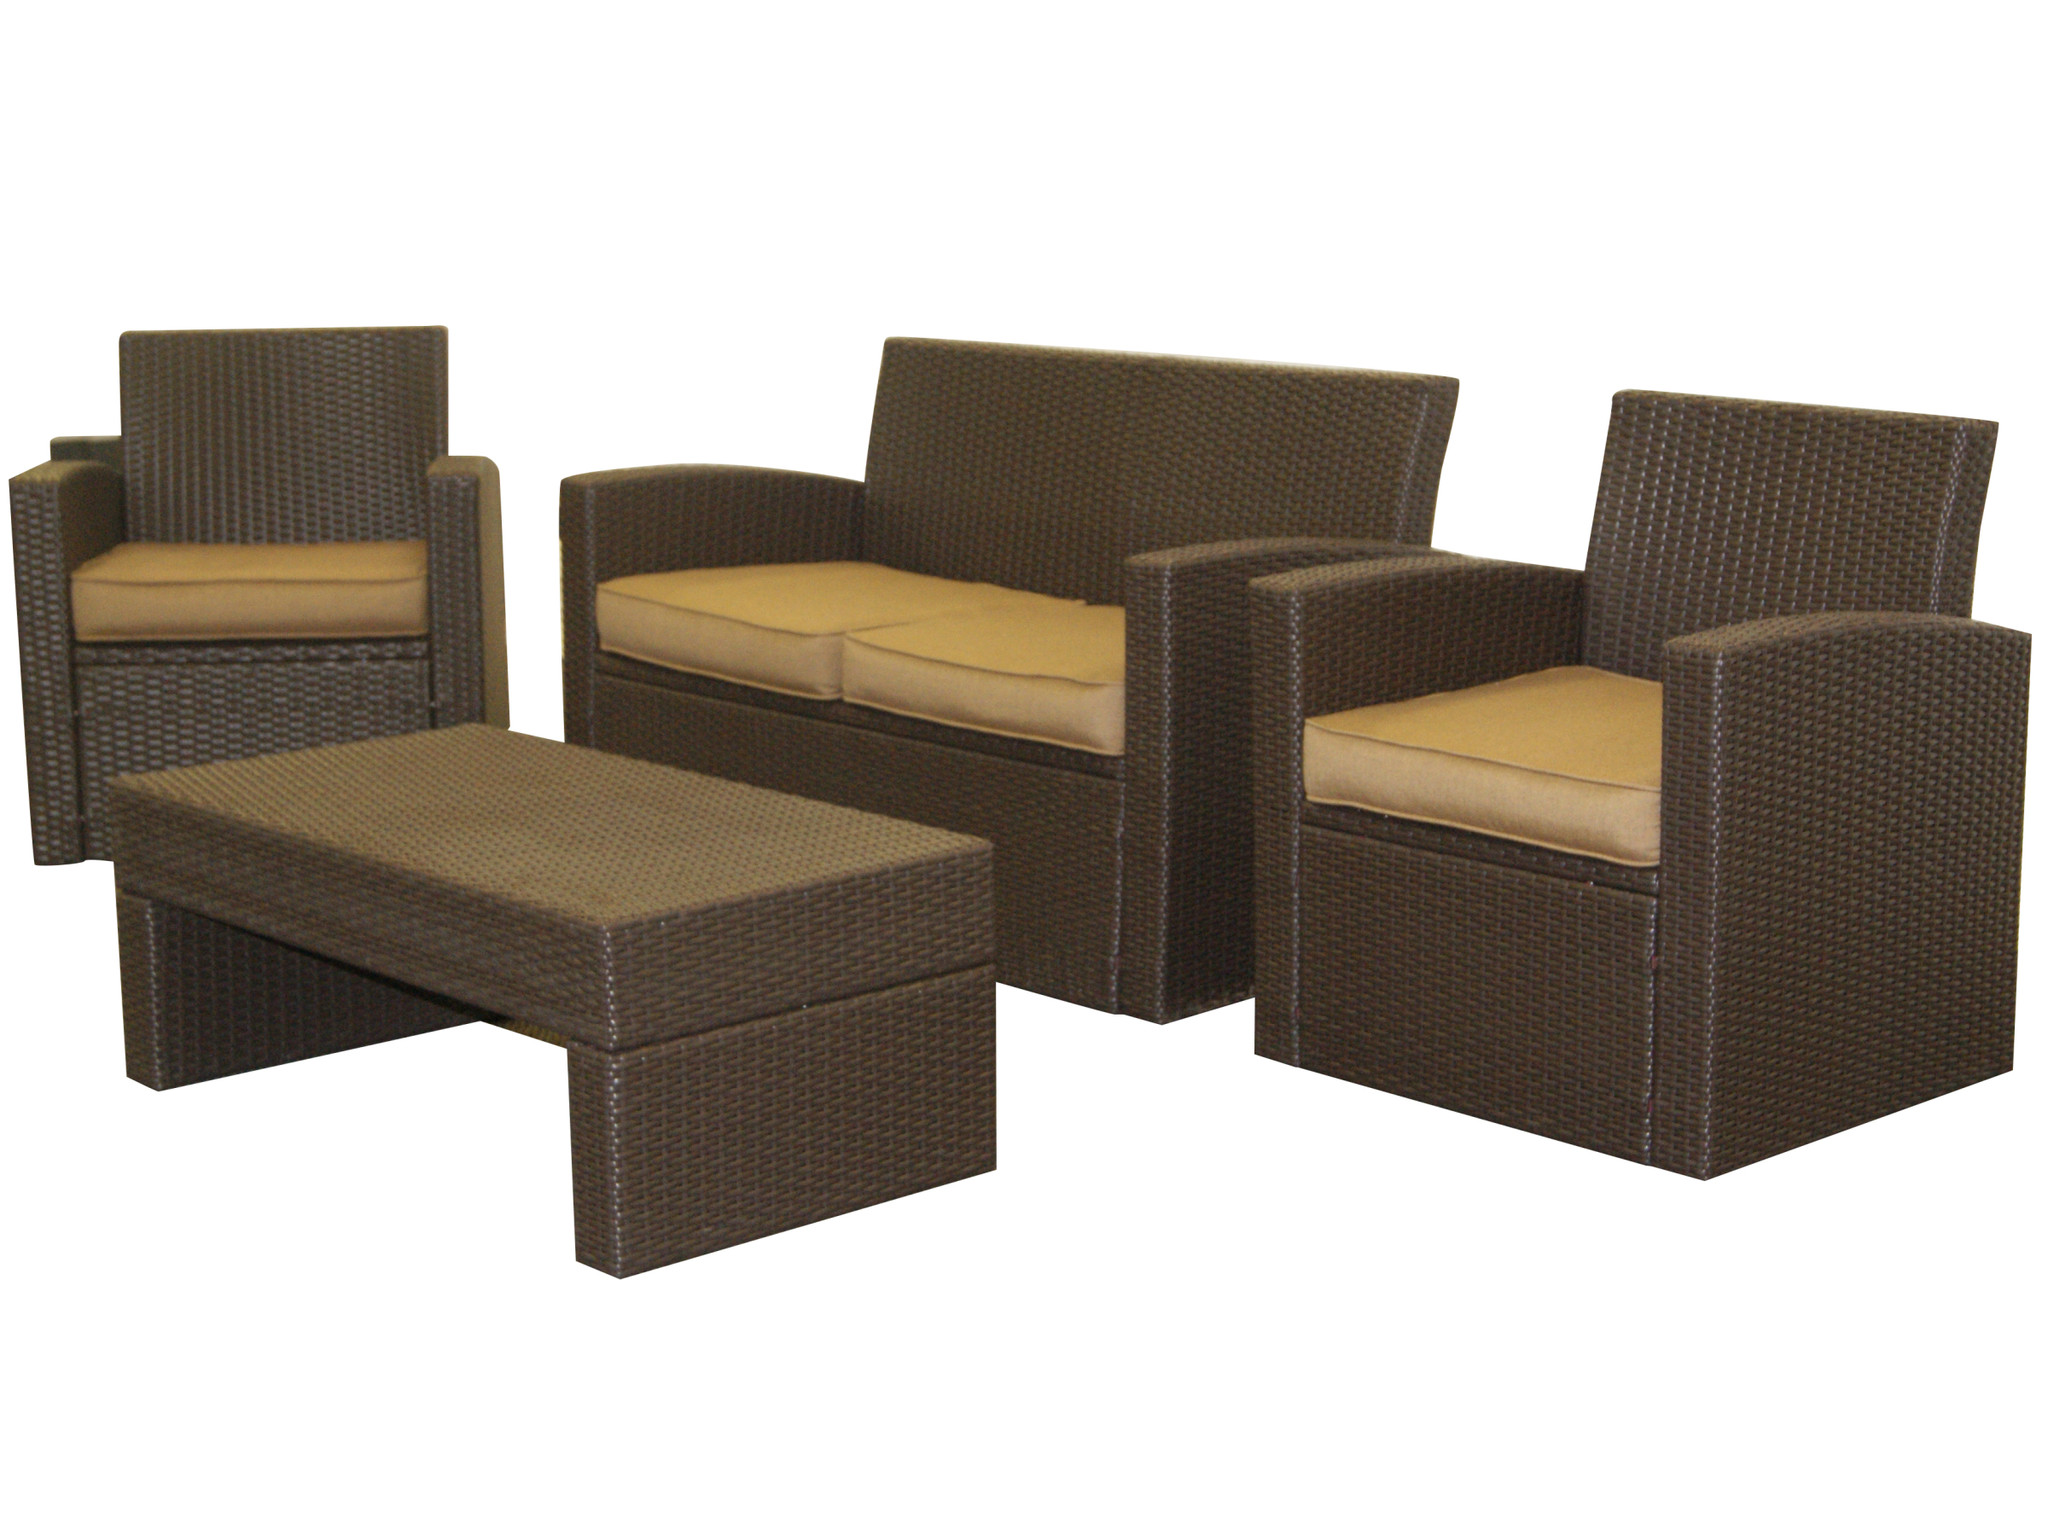 ePatio 4 Piece Resin Wicker Loveseat Set in Brown with 4 Brown Cushions by ePatio Furniture